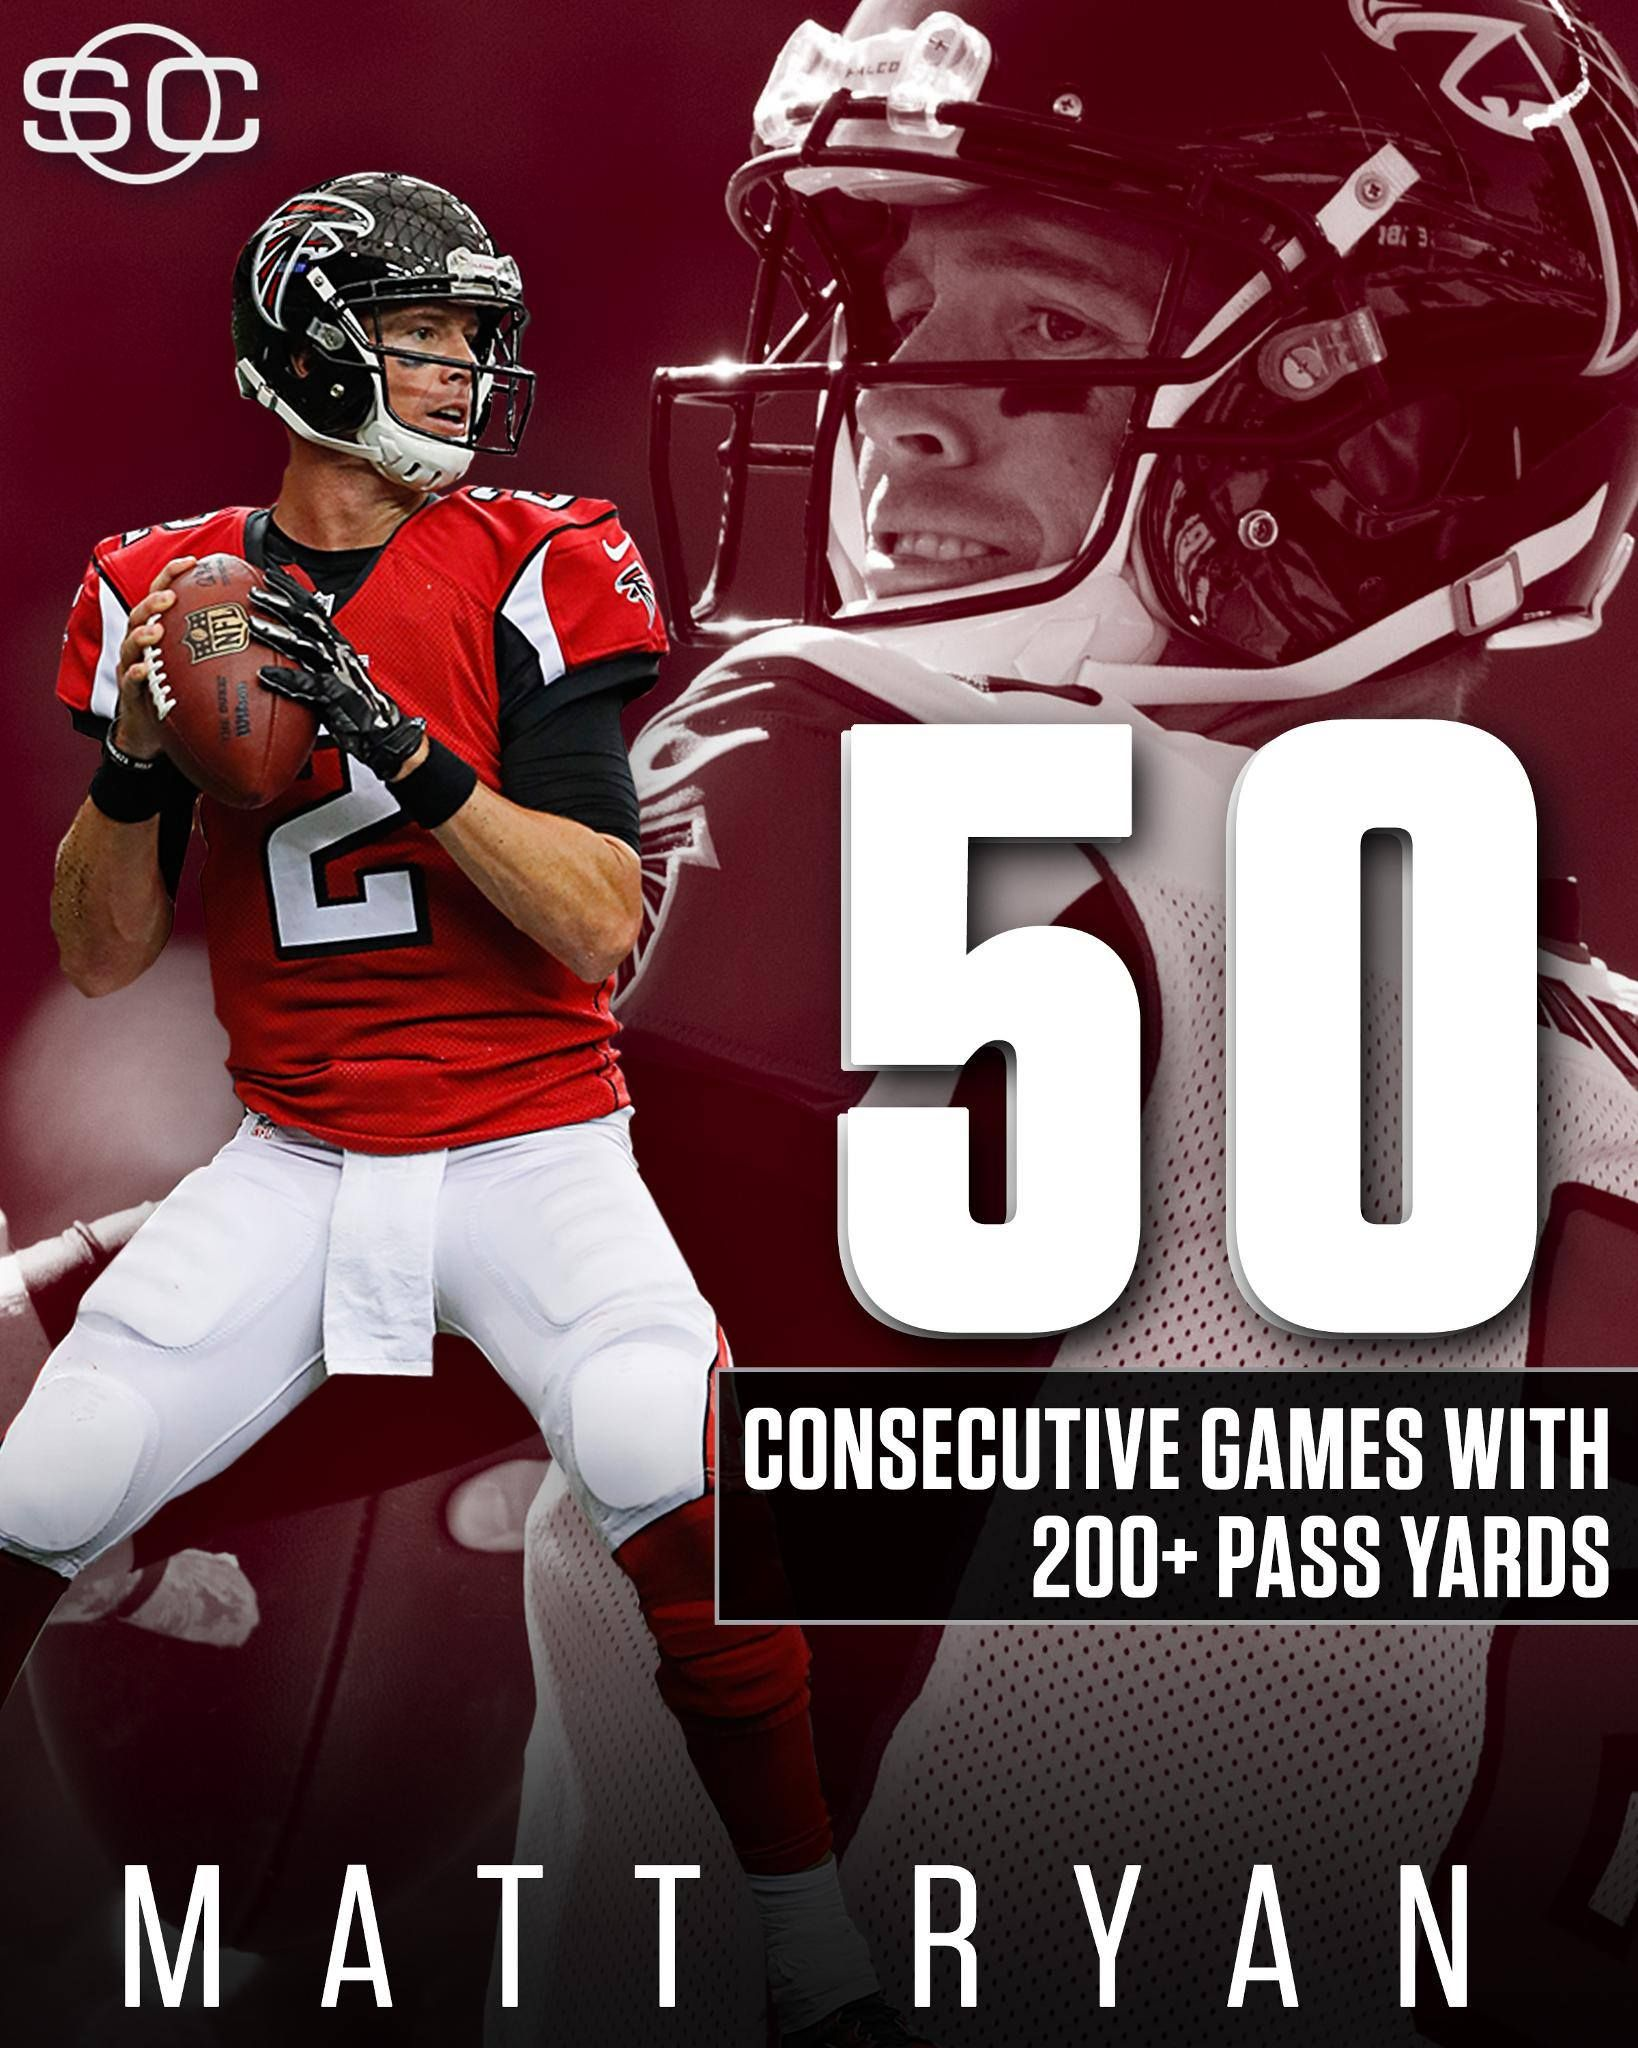 Matt Ryan Is The 1st Player In Nfl History To Pass For 200 Yards In 50 Consecutive Games Atlanta Falcons Memes Atlanta Falcons Quotes Falcons Football